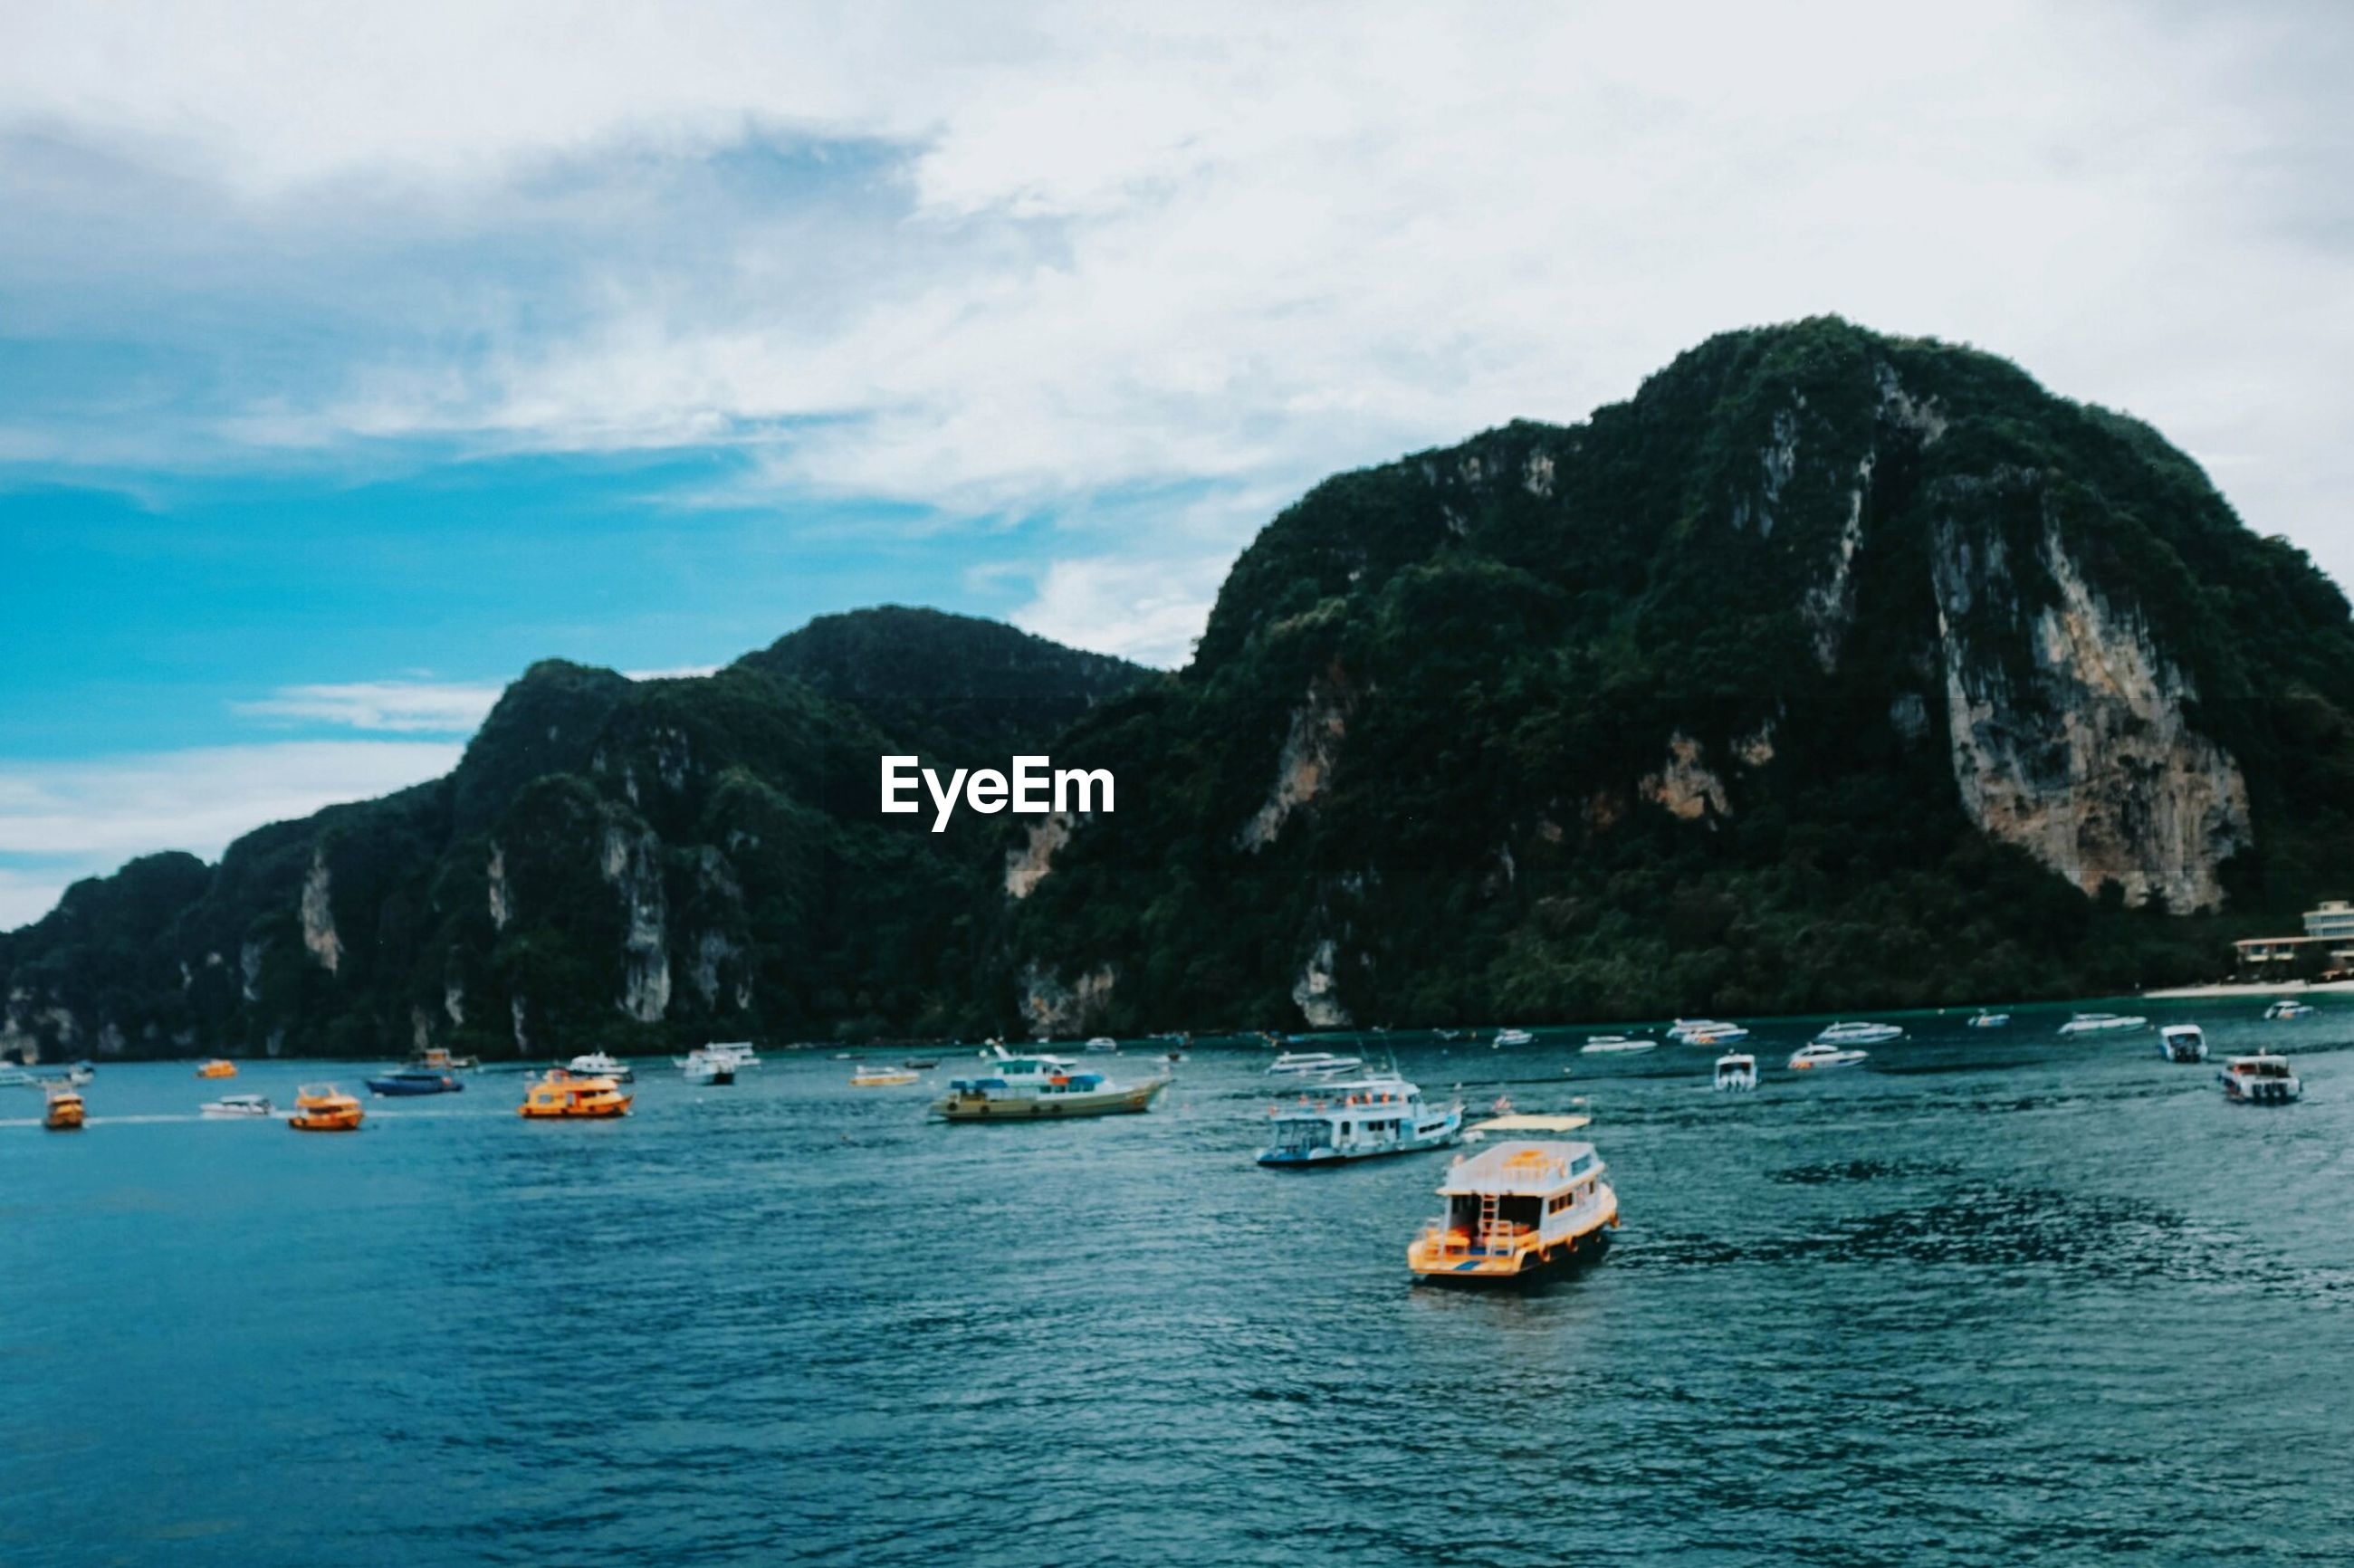 BOATS IN SEA AGAINST MOUNTAINS